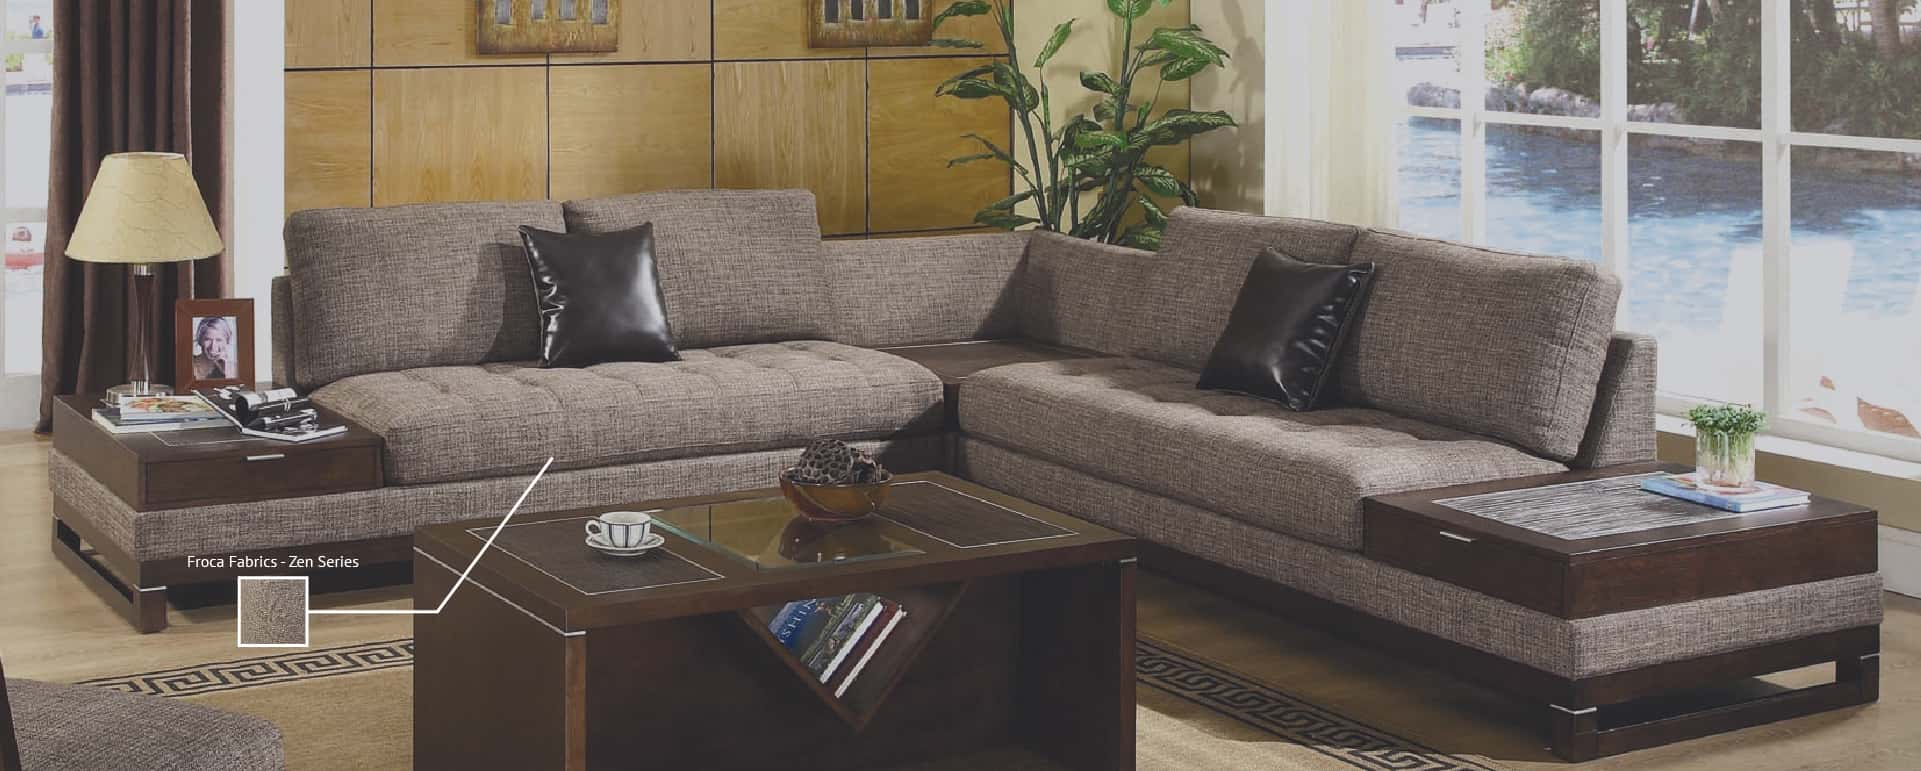 Malaysia Top Sofa Fabric And Sofa Leather Supplier | Siah Hoe, Kepong